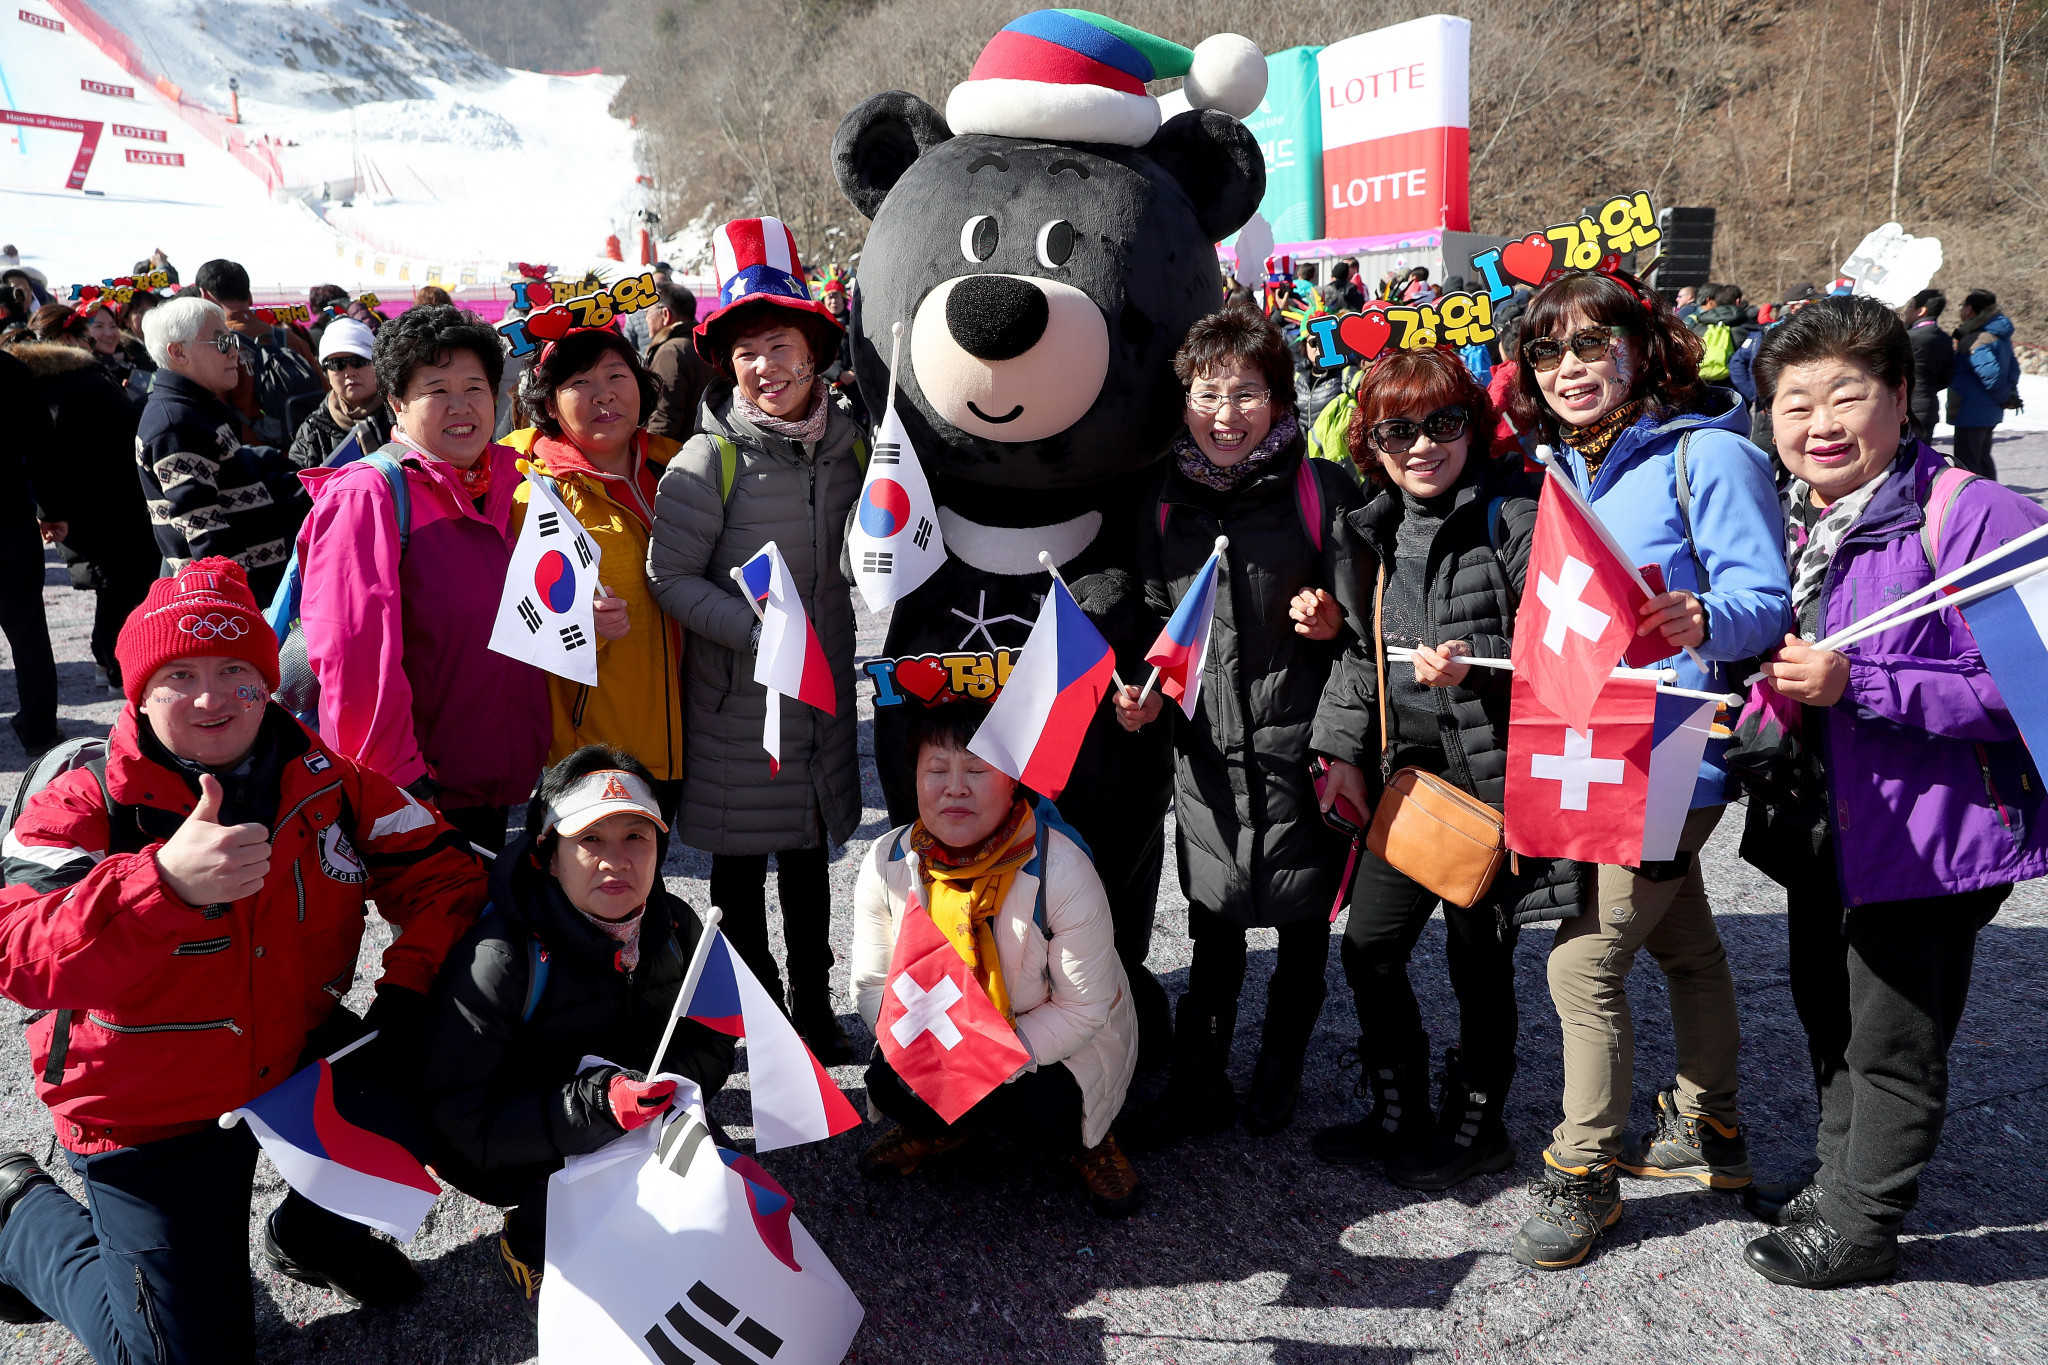 Pyeongchang 2018 visitors given option of extended South Korea stays